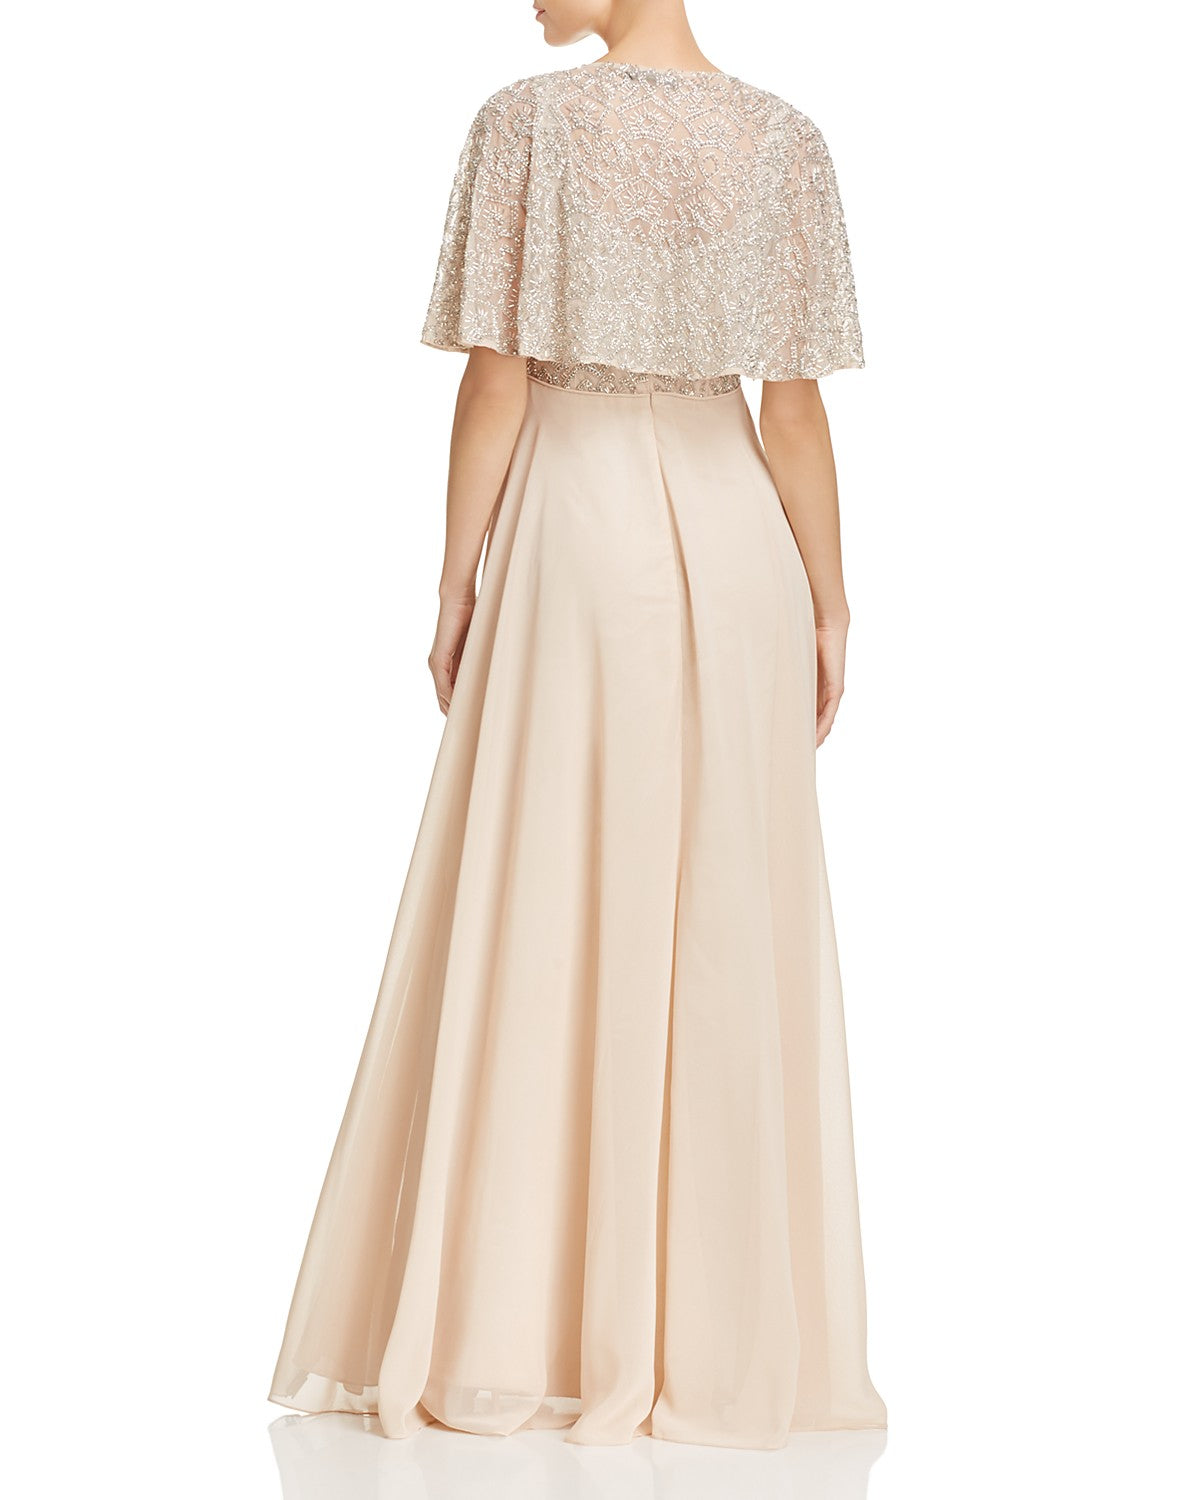 Aidan Mattox Tiered Beaded-Bodice Gown - Blush - Adinas Bridal